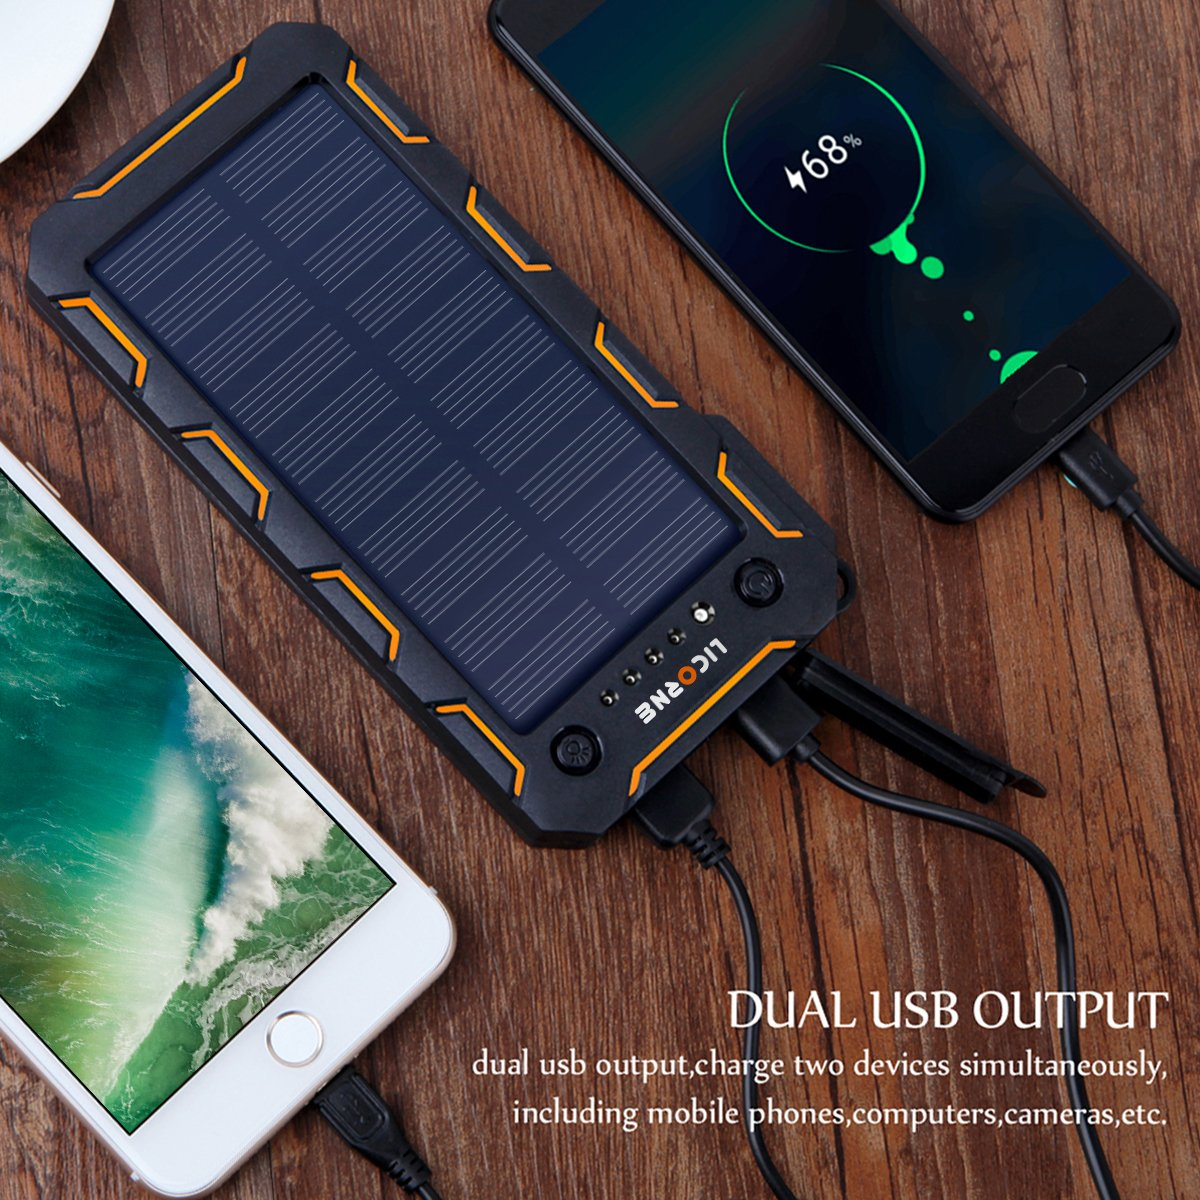 Solar Chargers,15000mAh Portable Solar Power Bank High Efficiency Sunpower Cellphone Chargers Rain-resistant Dirt/Shockproof Backup with Dual USB Port Solar Battery Charger for iPhone 7 / 6s / Plus, iPad Pro / Air 2 / mini, Galaxy S7 / S6 /